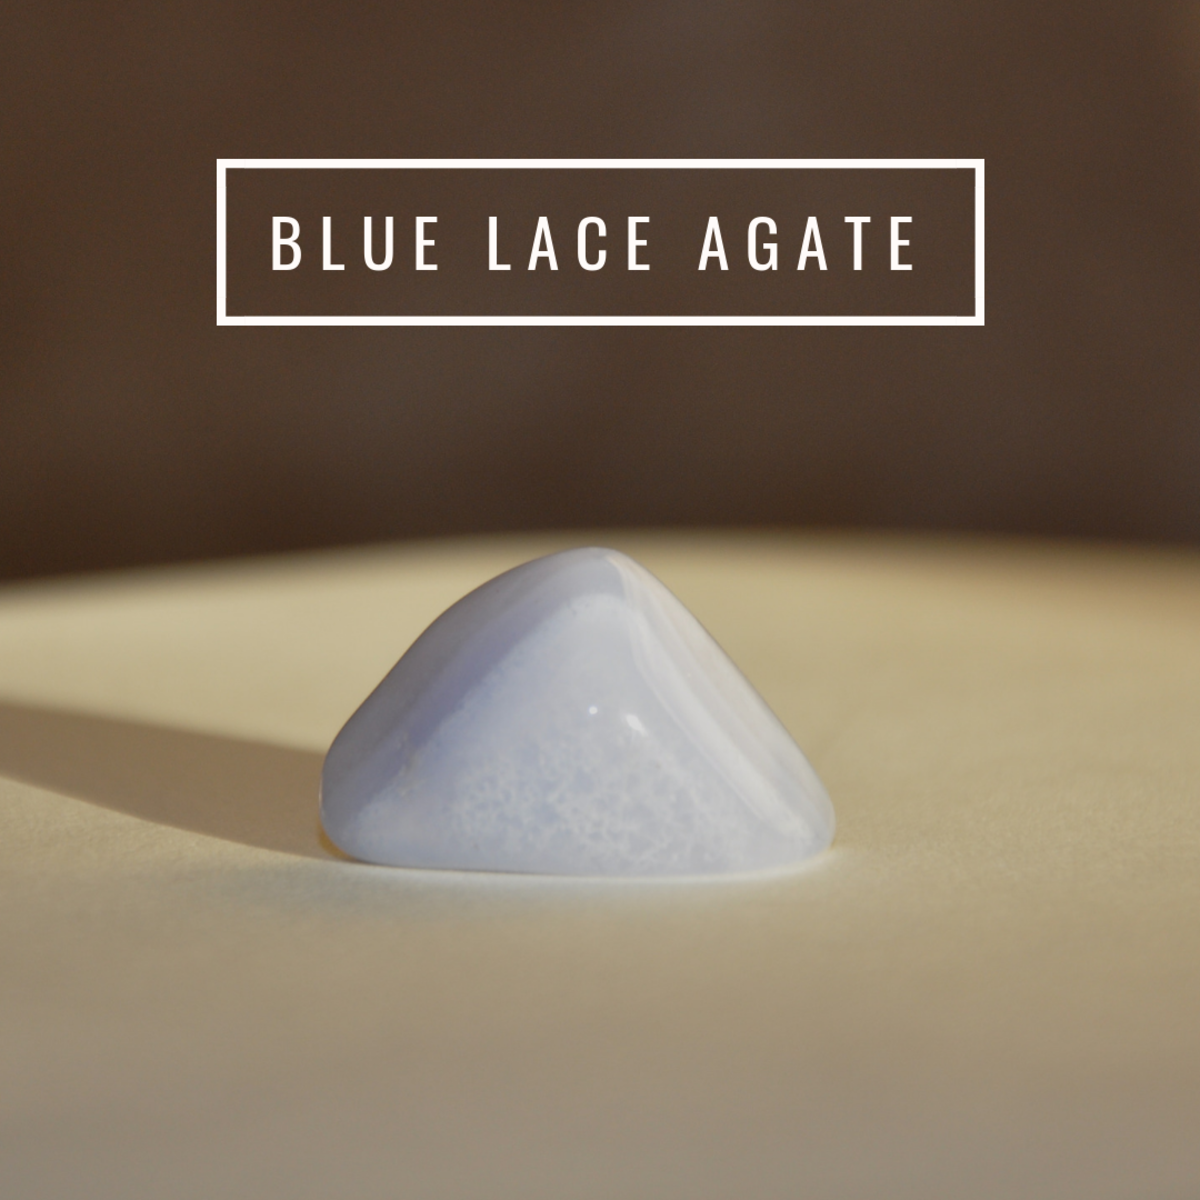 Blue lace agate is an excellent calming crystal.